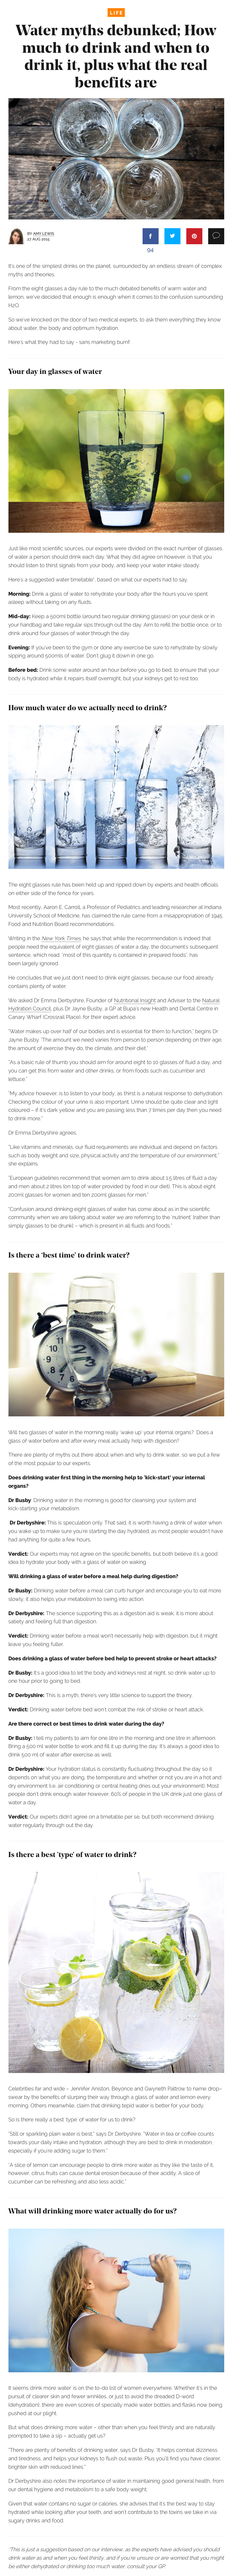 Water myths debunked; How much to drink and when to drink it, plus what the real benefits are